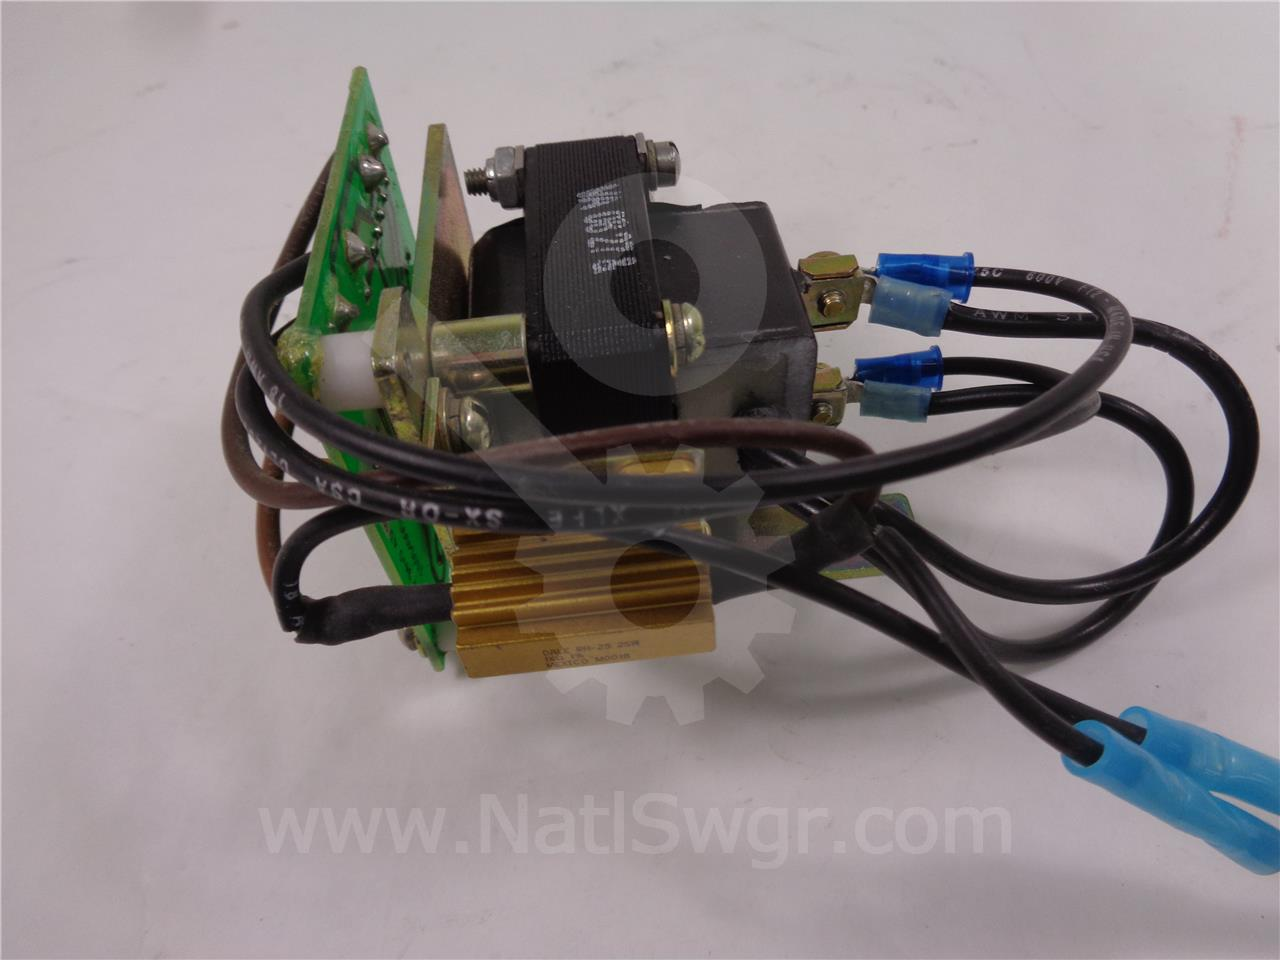 WPRCSFDC125 GE / General Electric 125VDC REMOTE CLOSE ASSEMBLY FOR WAVE PRO WITH CIRCUIT BOARD & SOLENOID